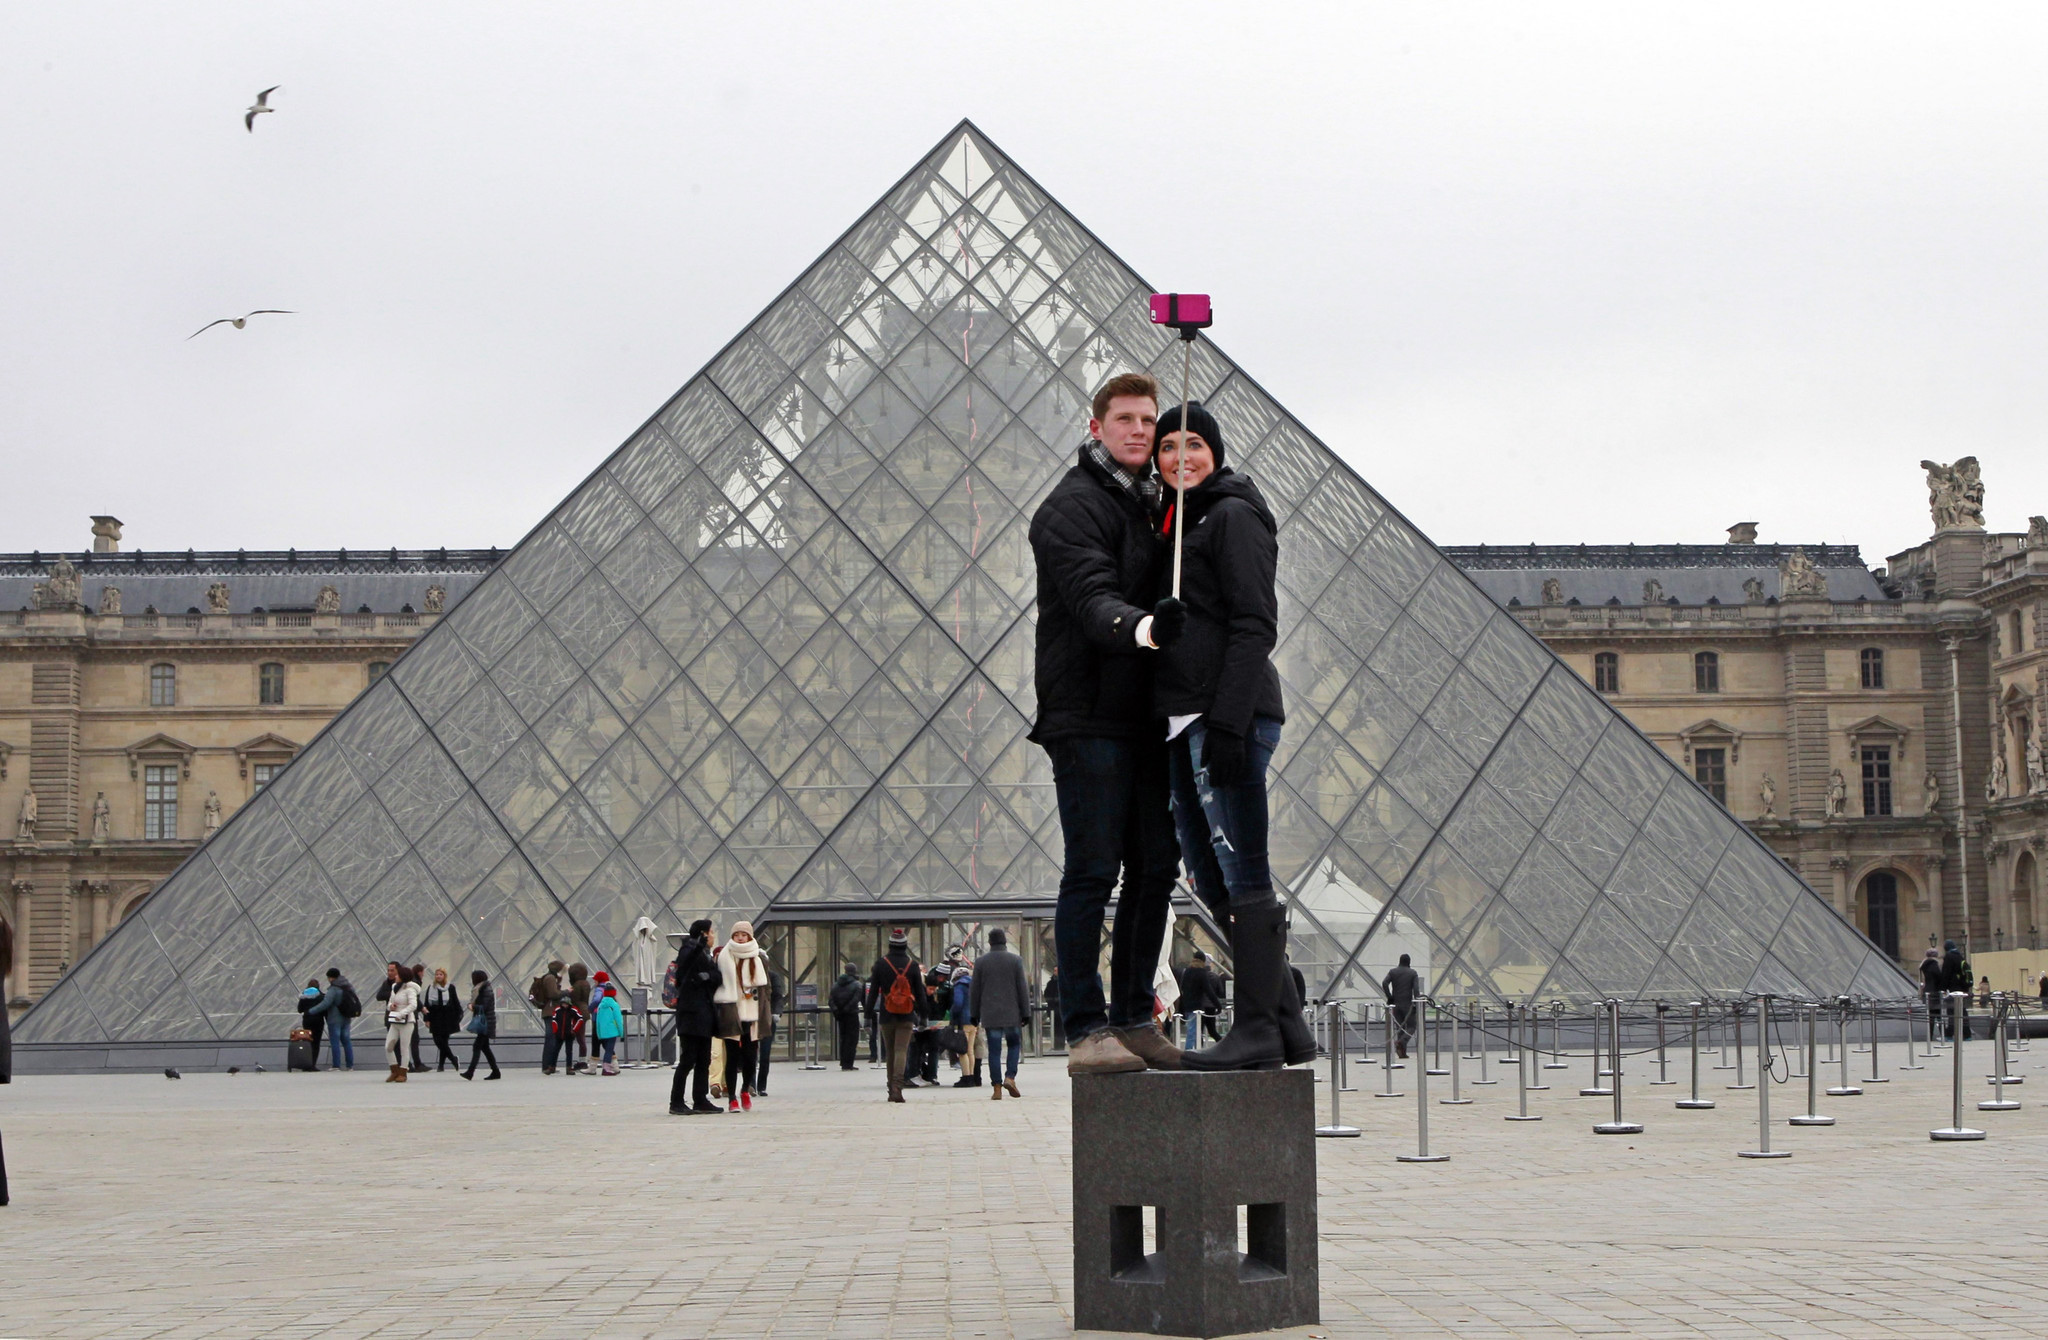 Selfie Stick Bans Go Into Effect At Art Institute